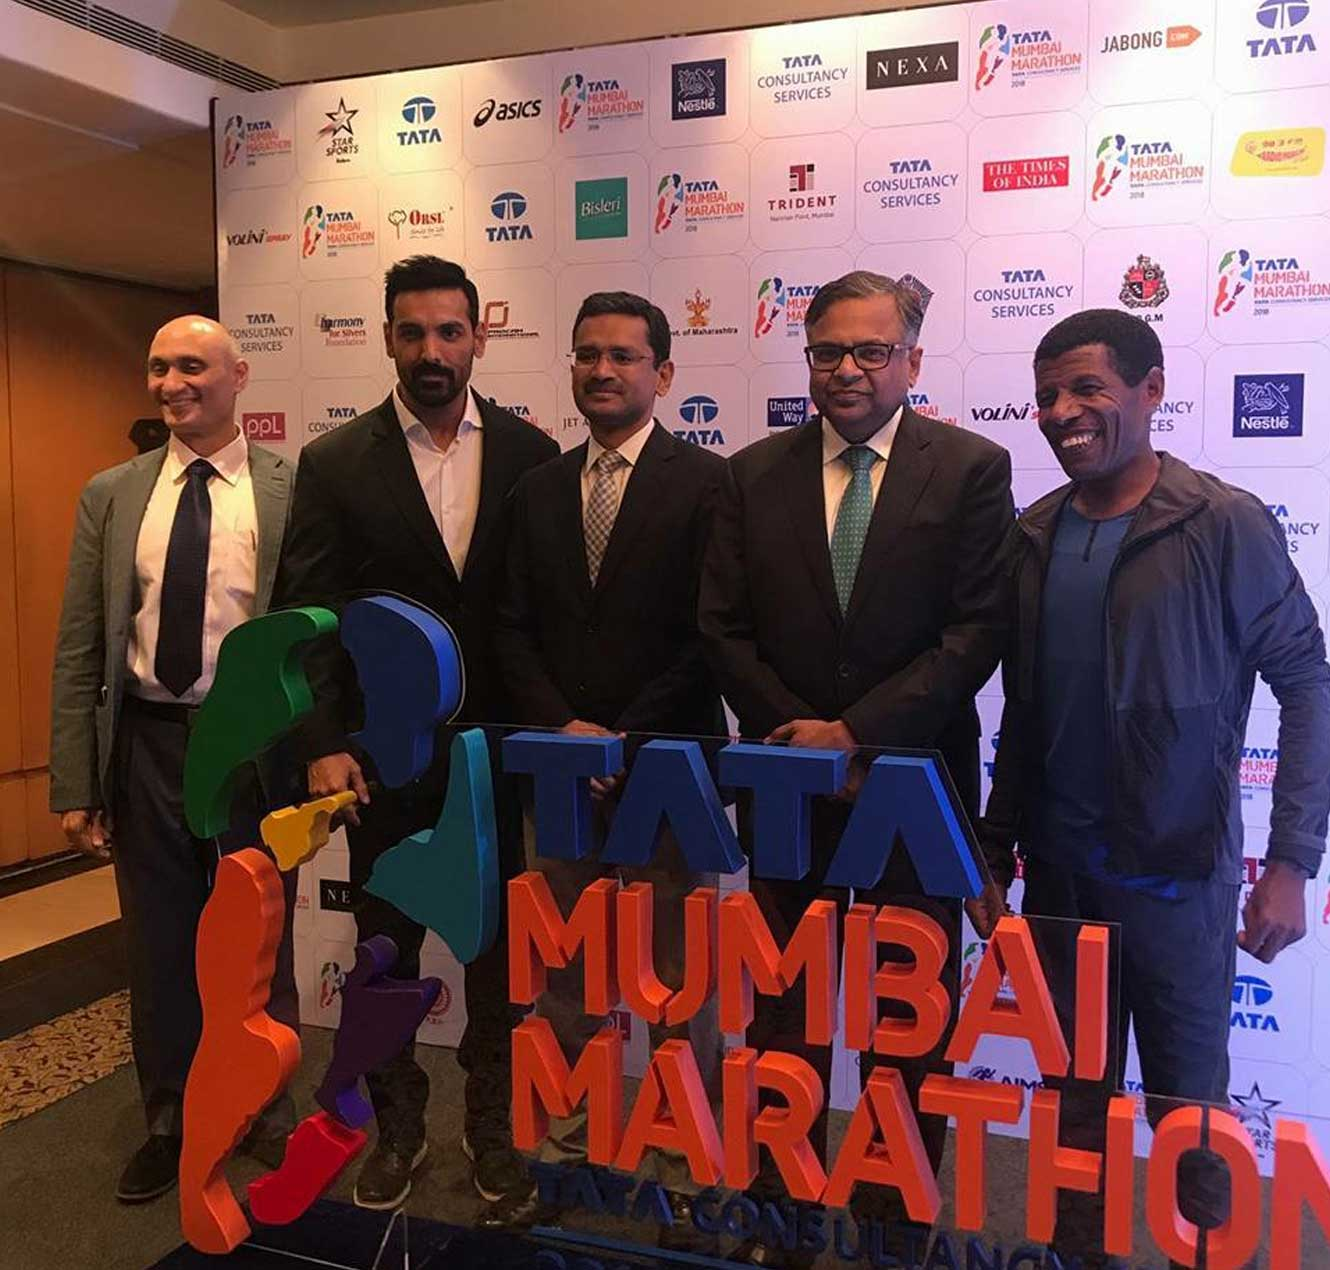 The Tata group to be title sponsor of Asia's most prestigious marathon for 10 years